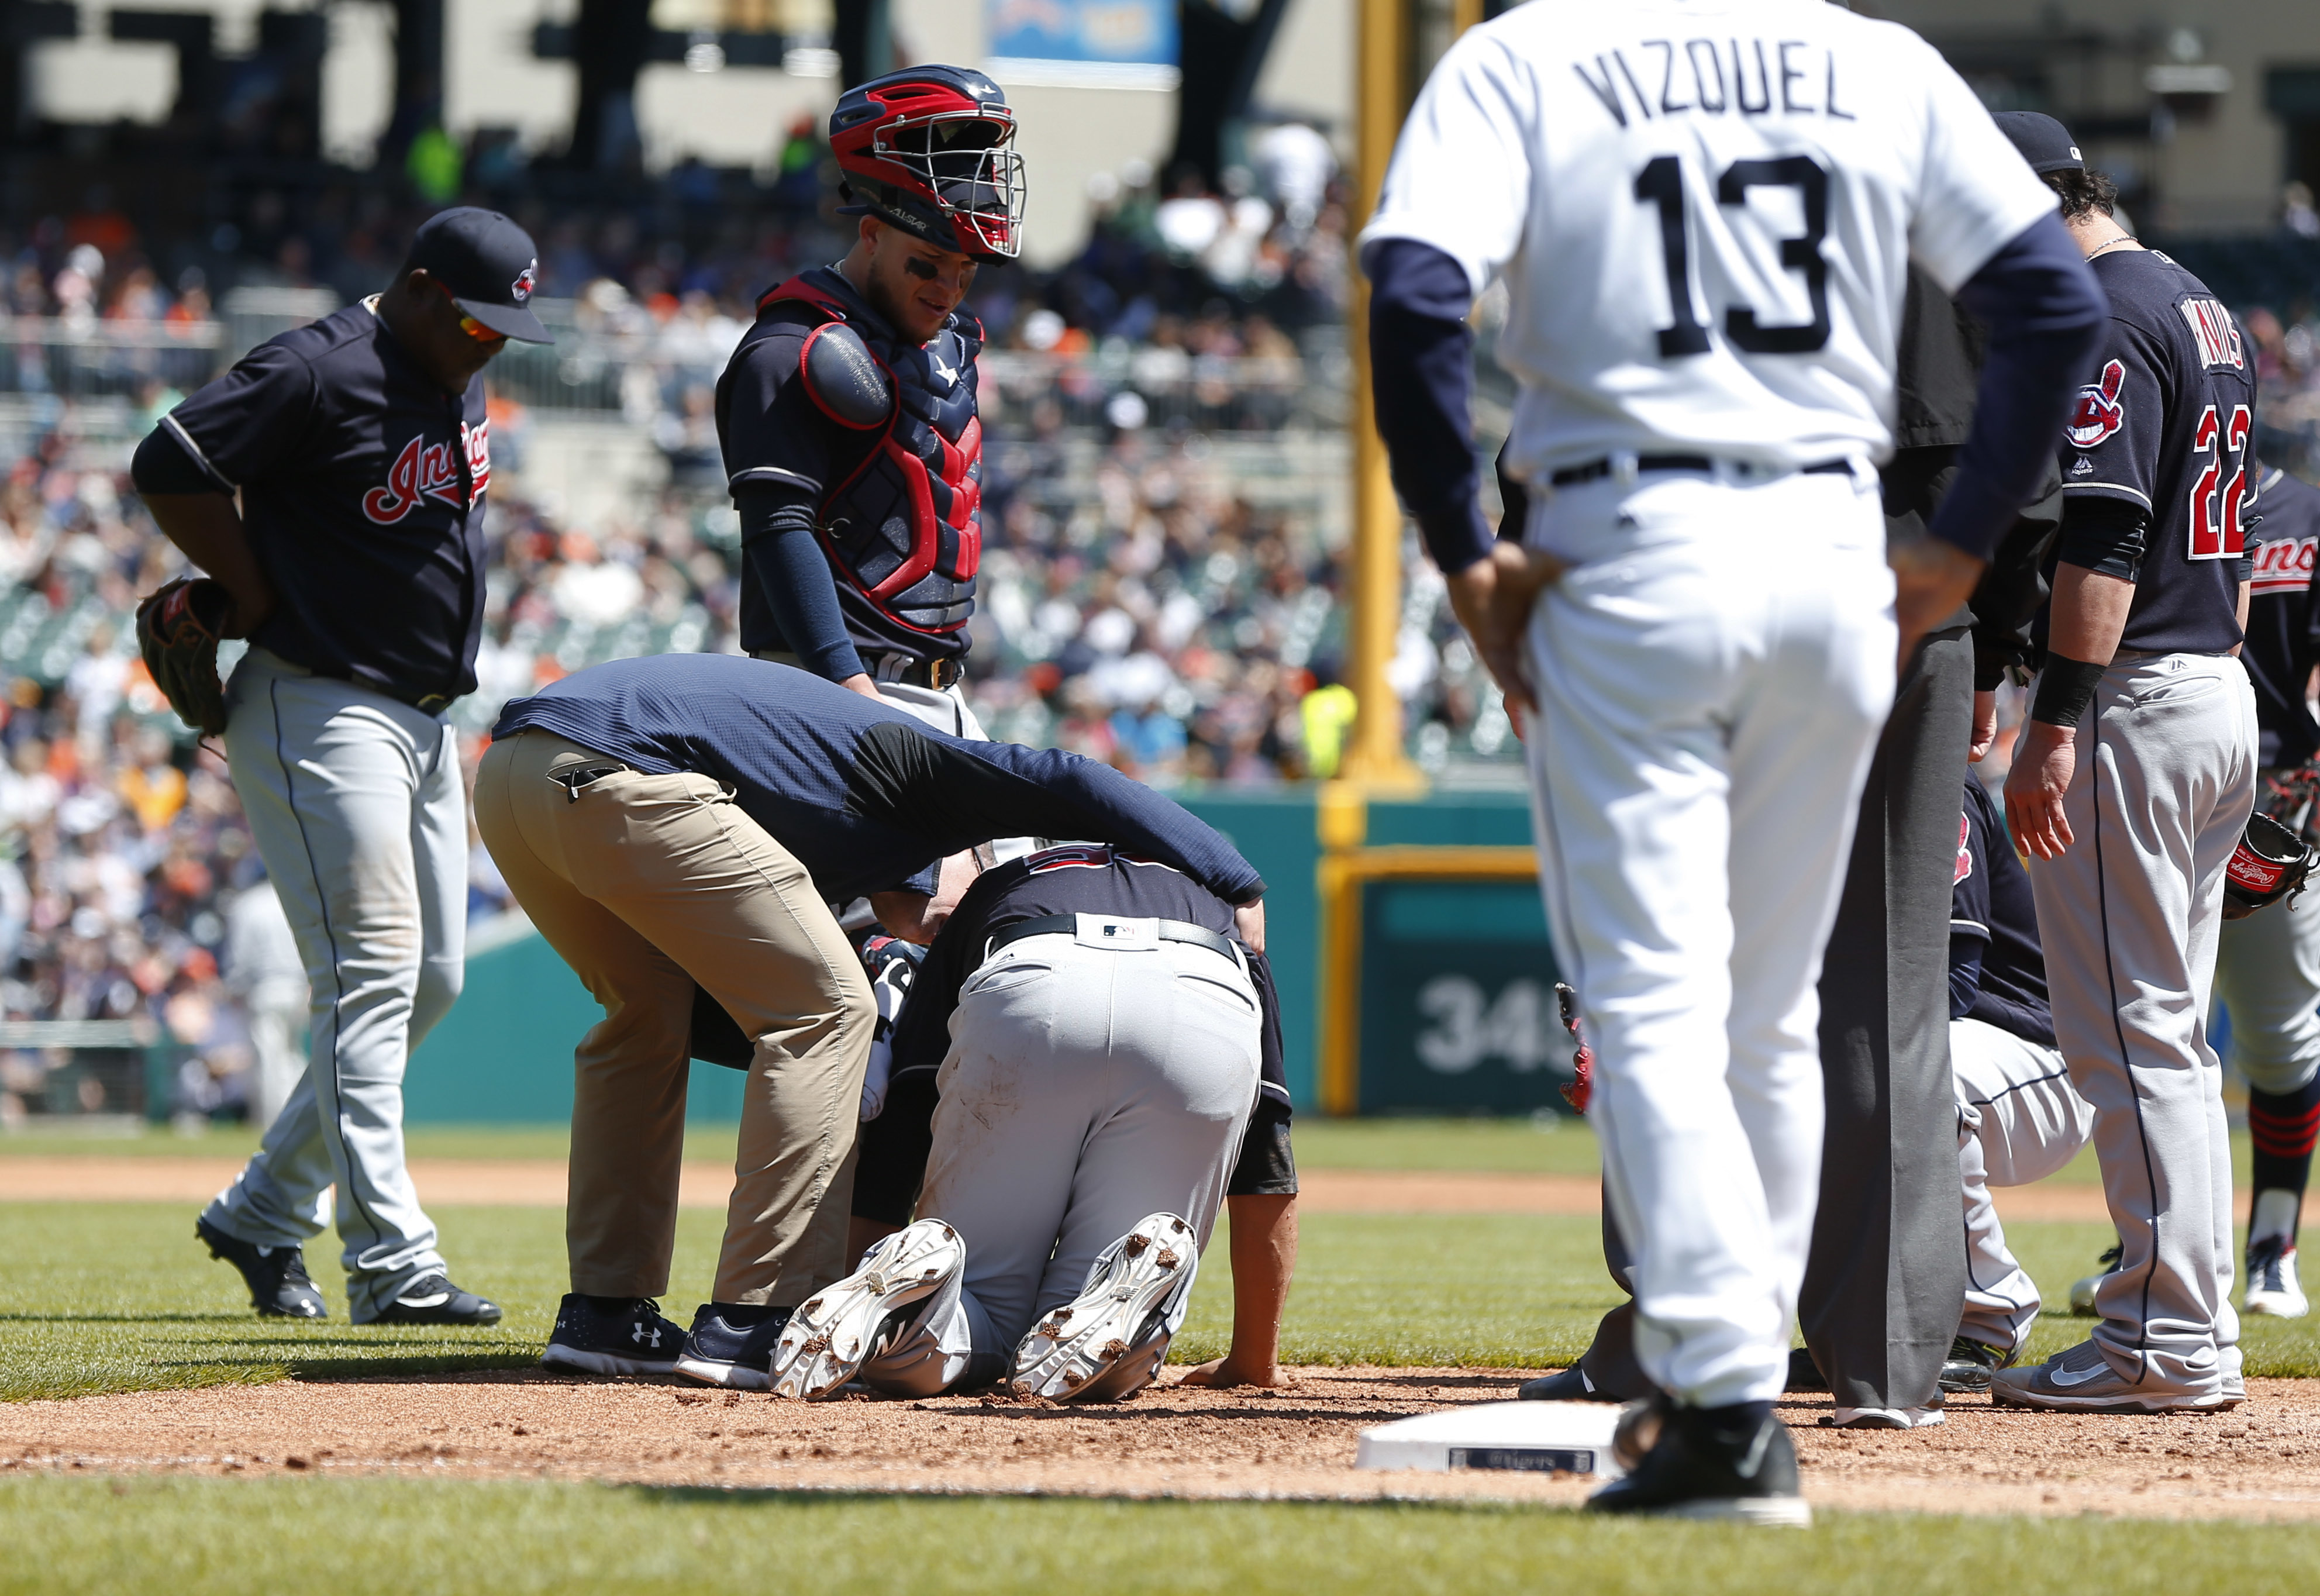 Cleveland Indians pitcher Carlos Carrasco, center, is helped by a trainer on the field in the third inning of a baseball game against the Detroit Tigers, Sunday, April 24, 2016, in Detroit. (AP Photo/Paul Sancya)